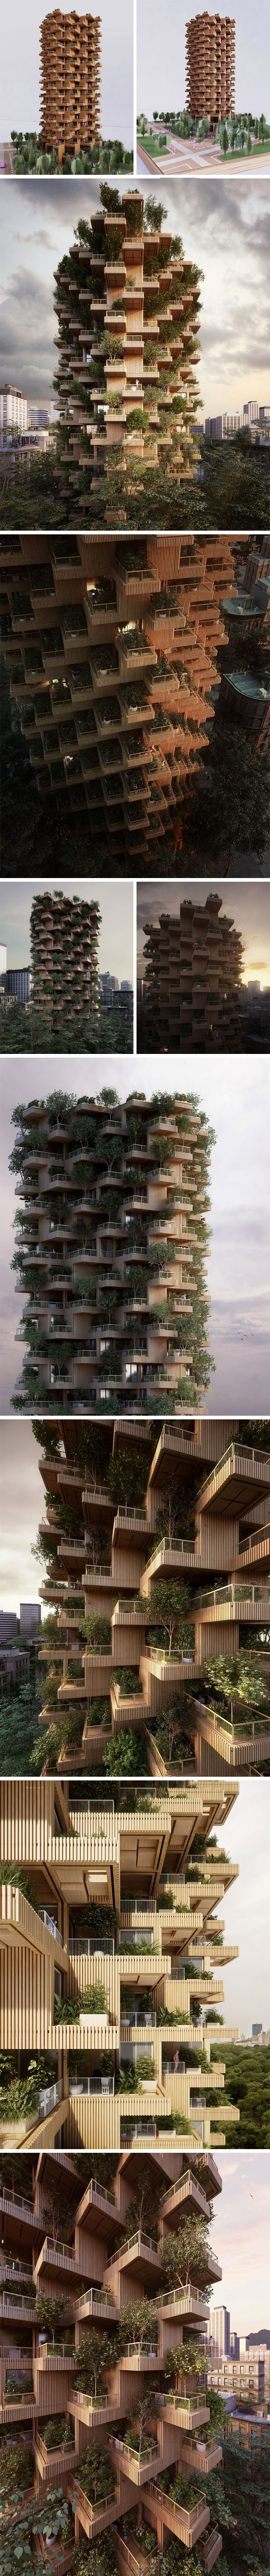 Designed to be built using a modular system of wooden live-able unite, the Toronto Tower when completed will stand at 62 meters high. Each housing unit would also be home to a large number of plants and trees growing in private gardens that are a part of each and every residential unit. These individual units would be made from CLT and would be built off-site and brought to the site for stacking in its unique format.